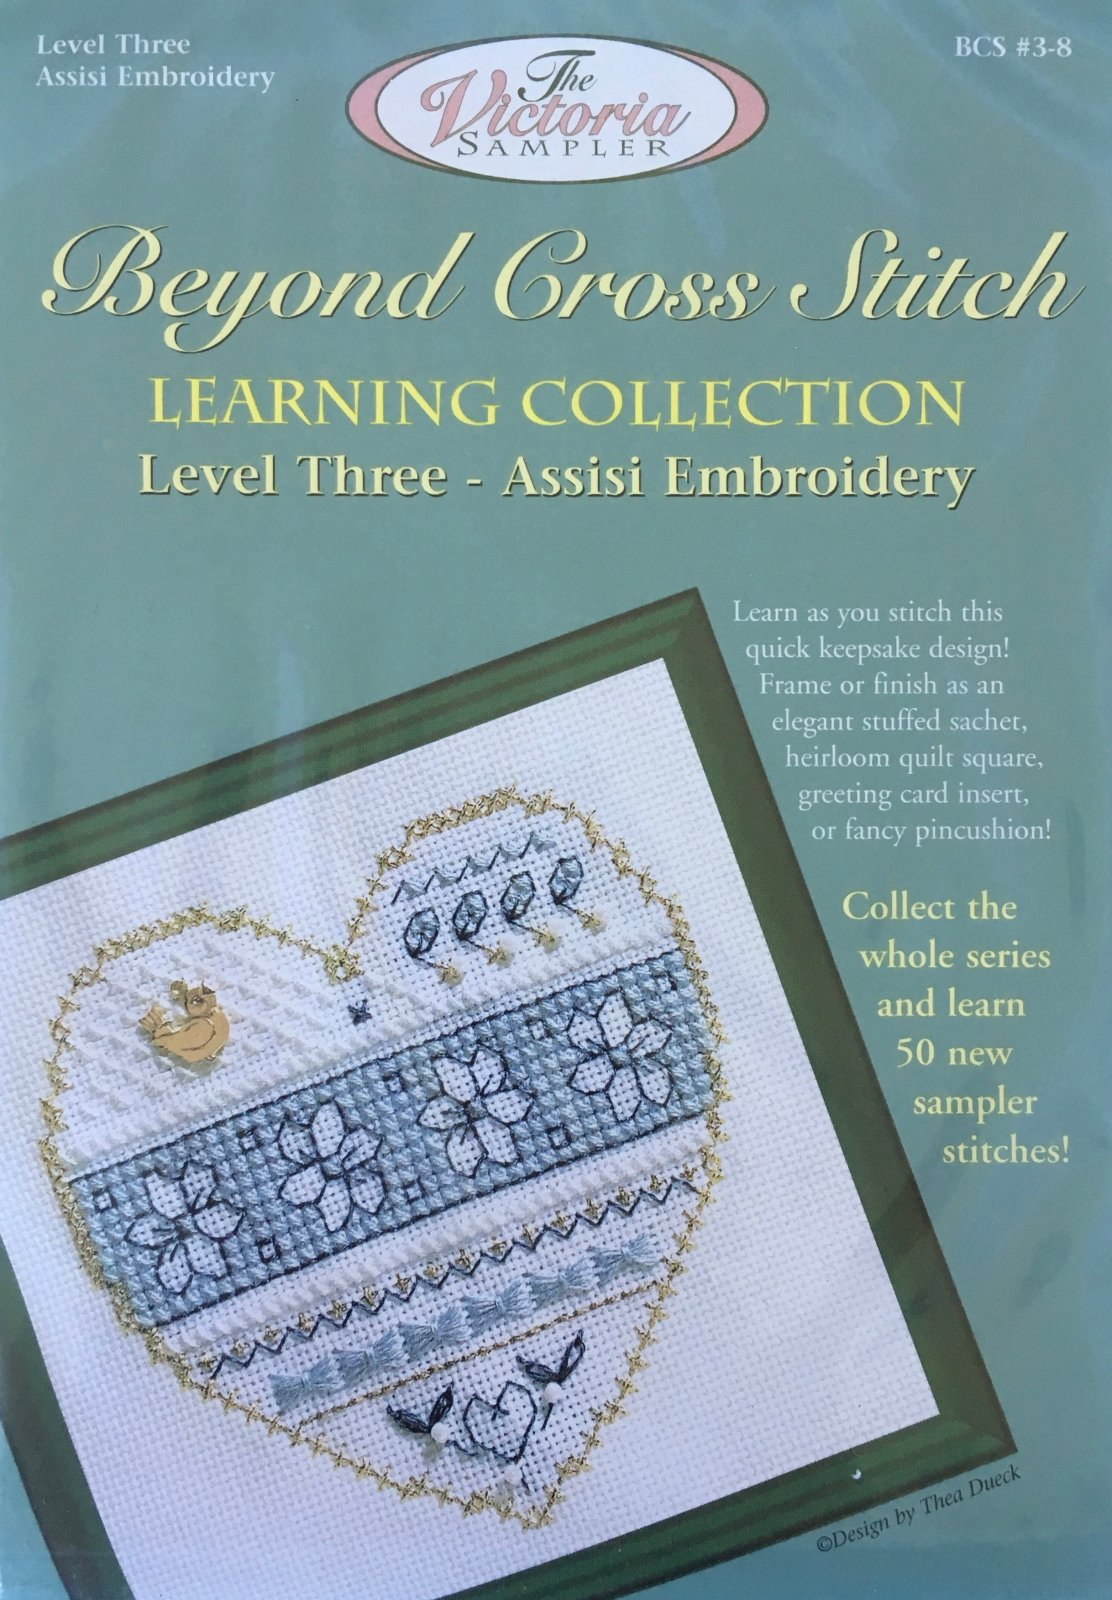 The Victoria Sampler: Blue And White Floral Level 3 - #8 Kit; Assissi Embroidery